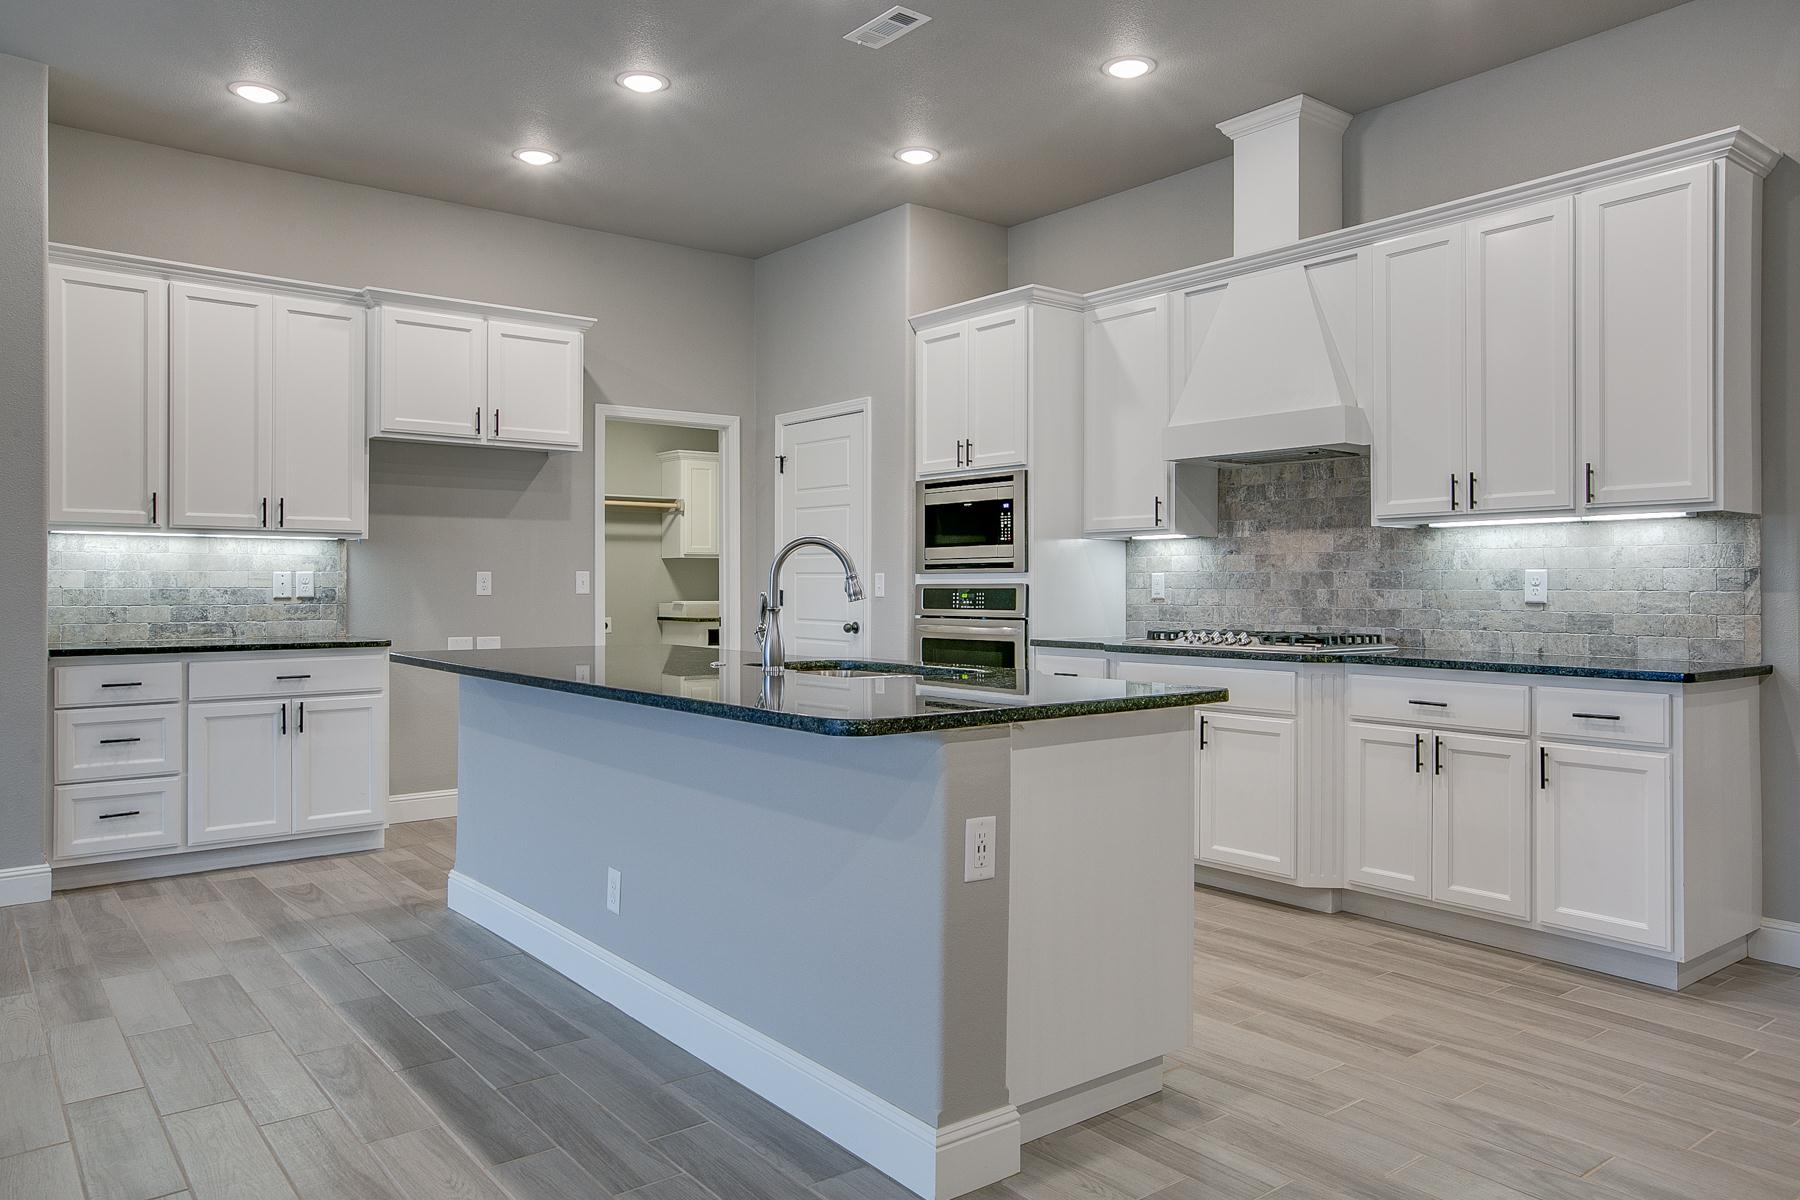 Kitchen featured in the 2500 Series By Schuber Mitchell Homes in Fayetteville, AR